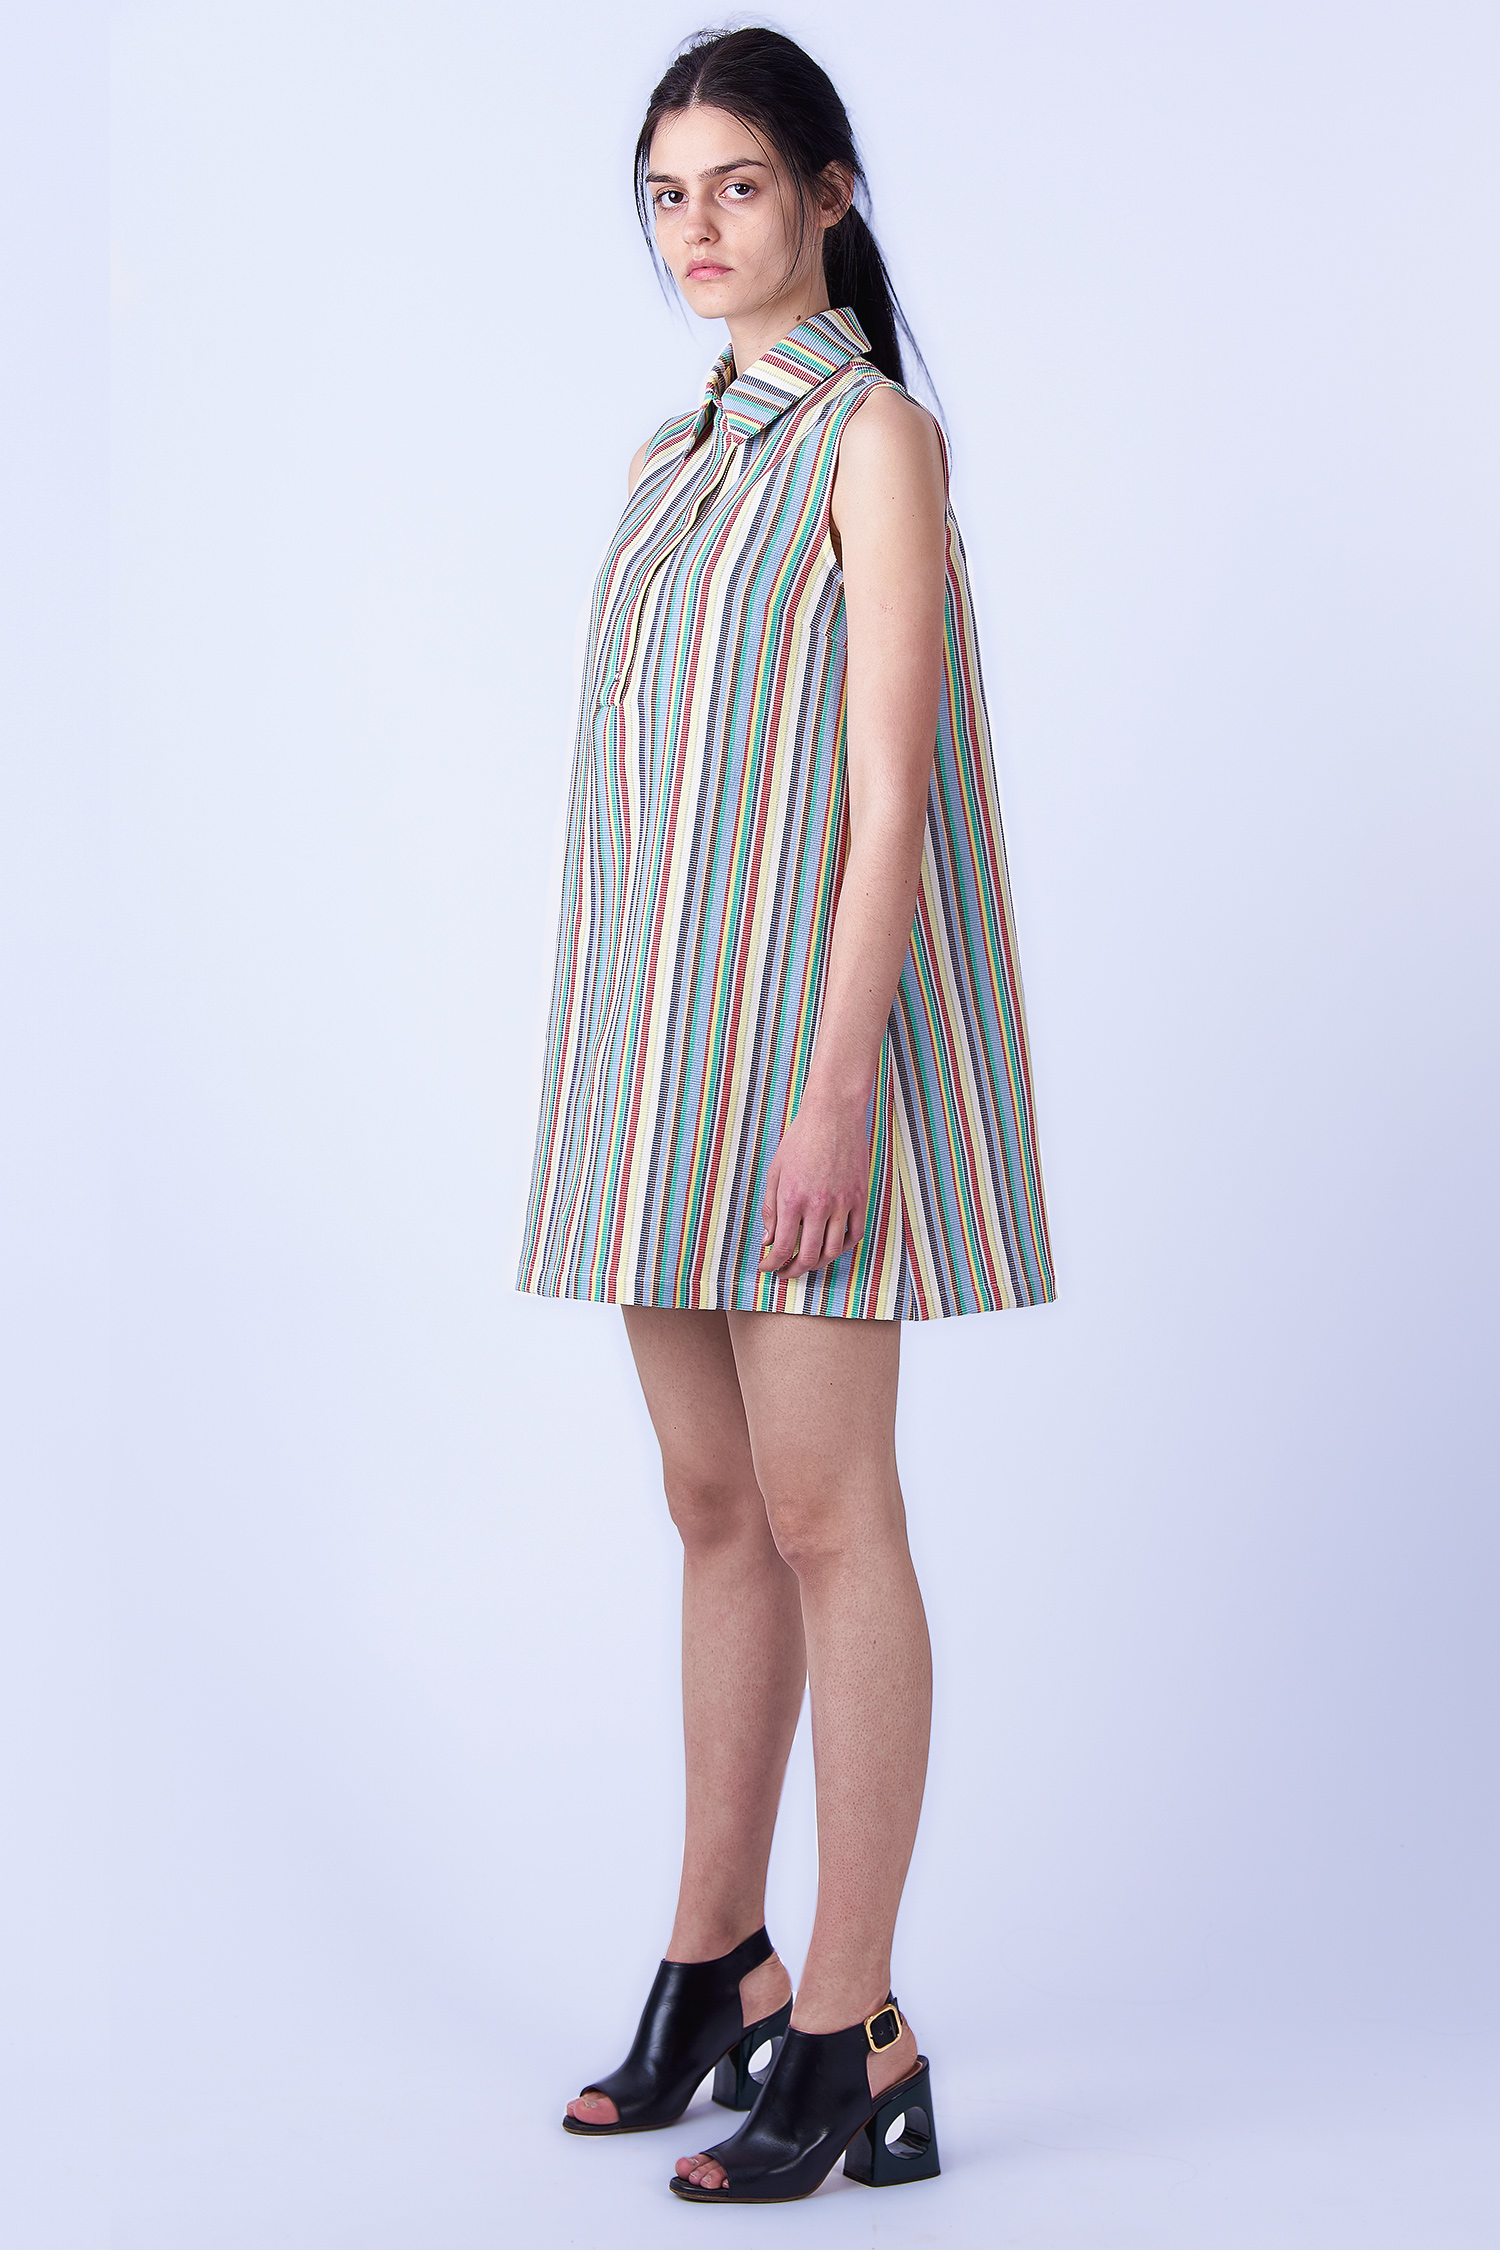 Acephala SS2019 Slavic Goddesses Color Striped Midi Dress side